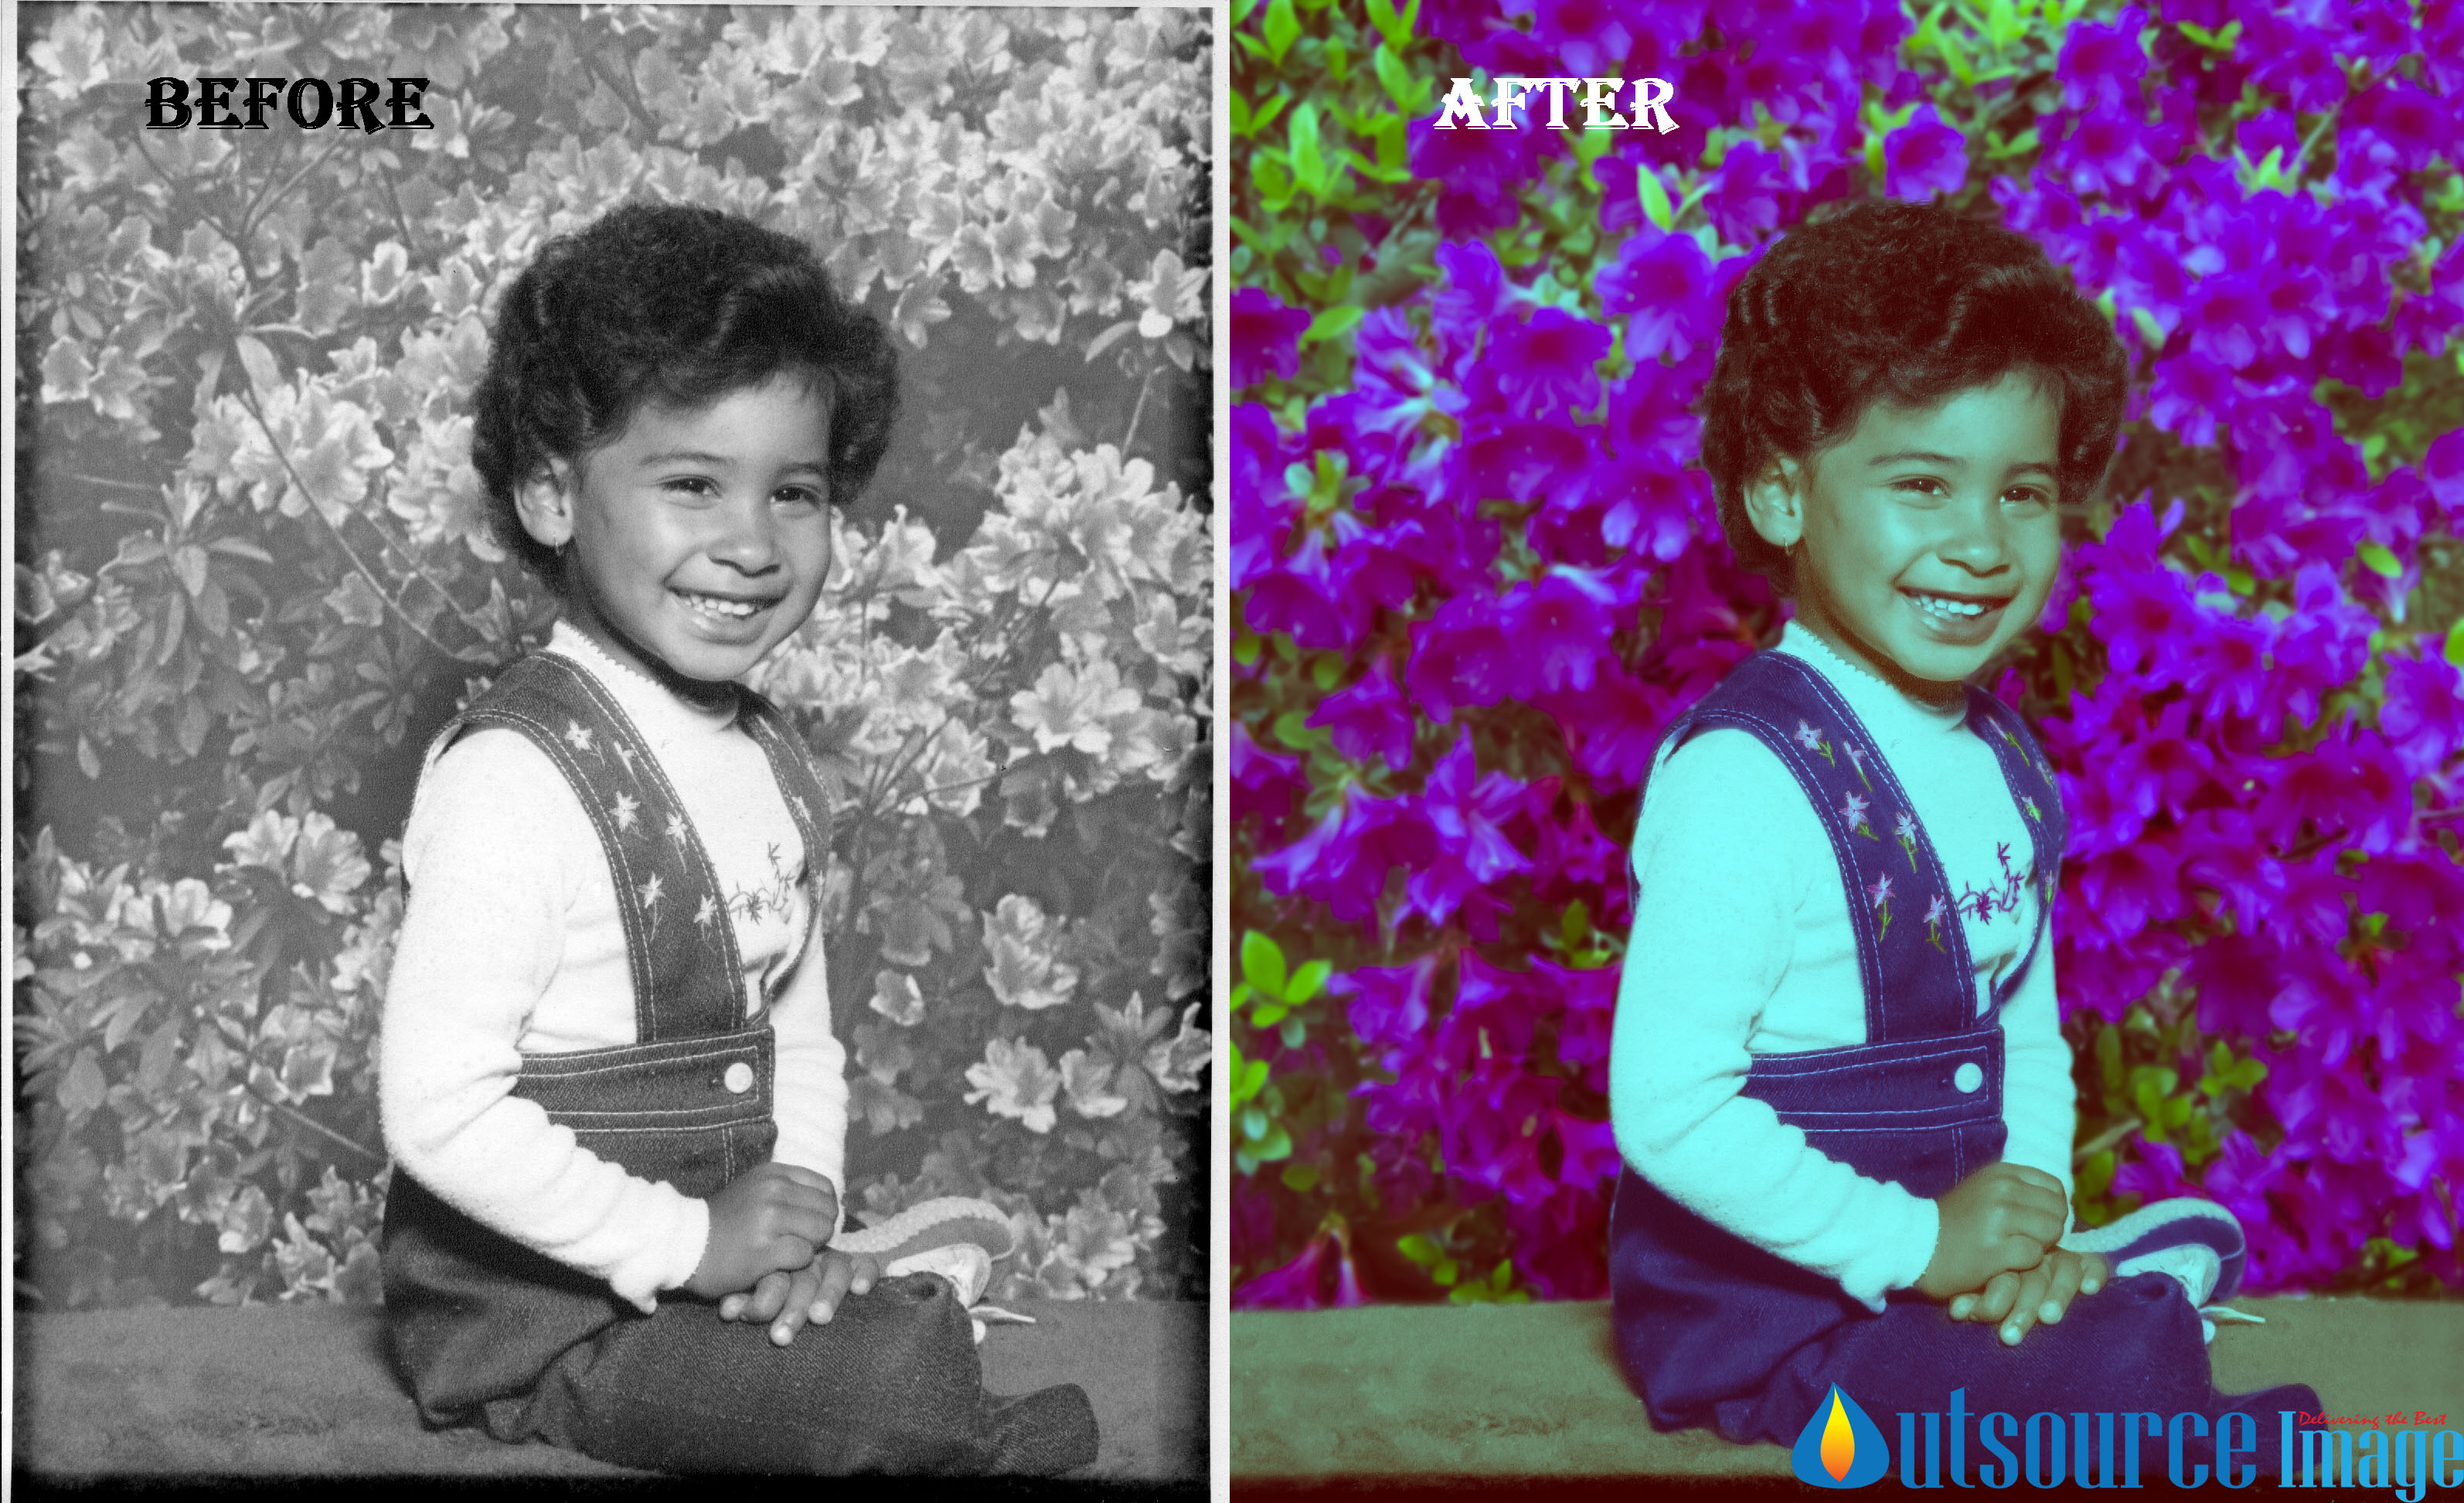 Restoration Services to Fix Missing Areas in Your Photos